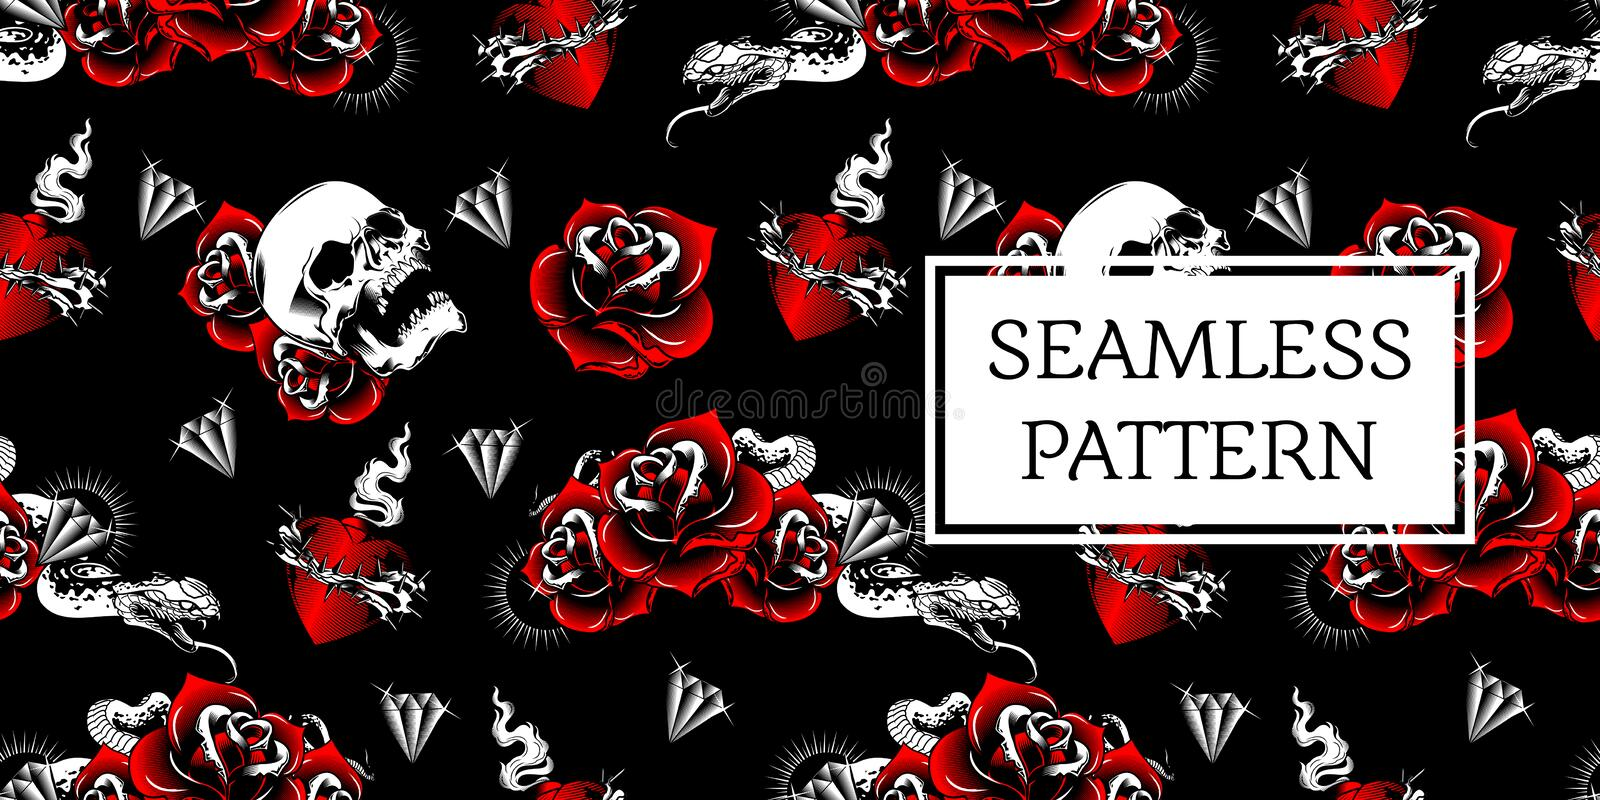 SEAMLESS PATTERN TATTOO DESIGN OLD SCHOOL vector illustration